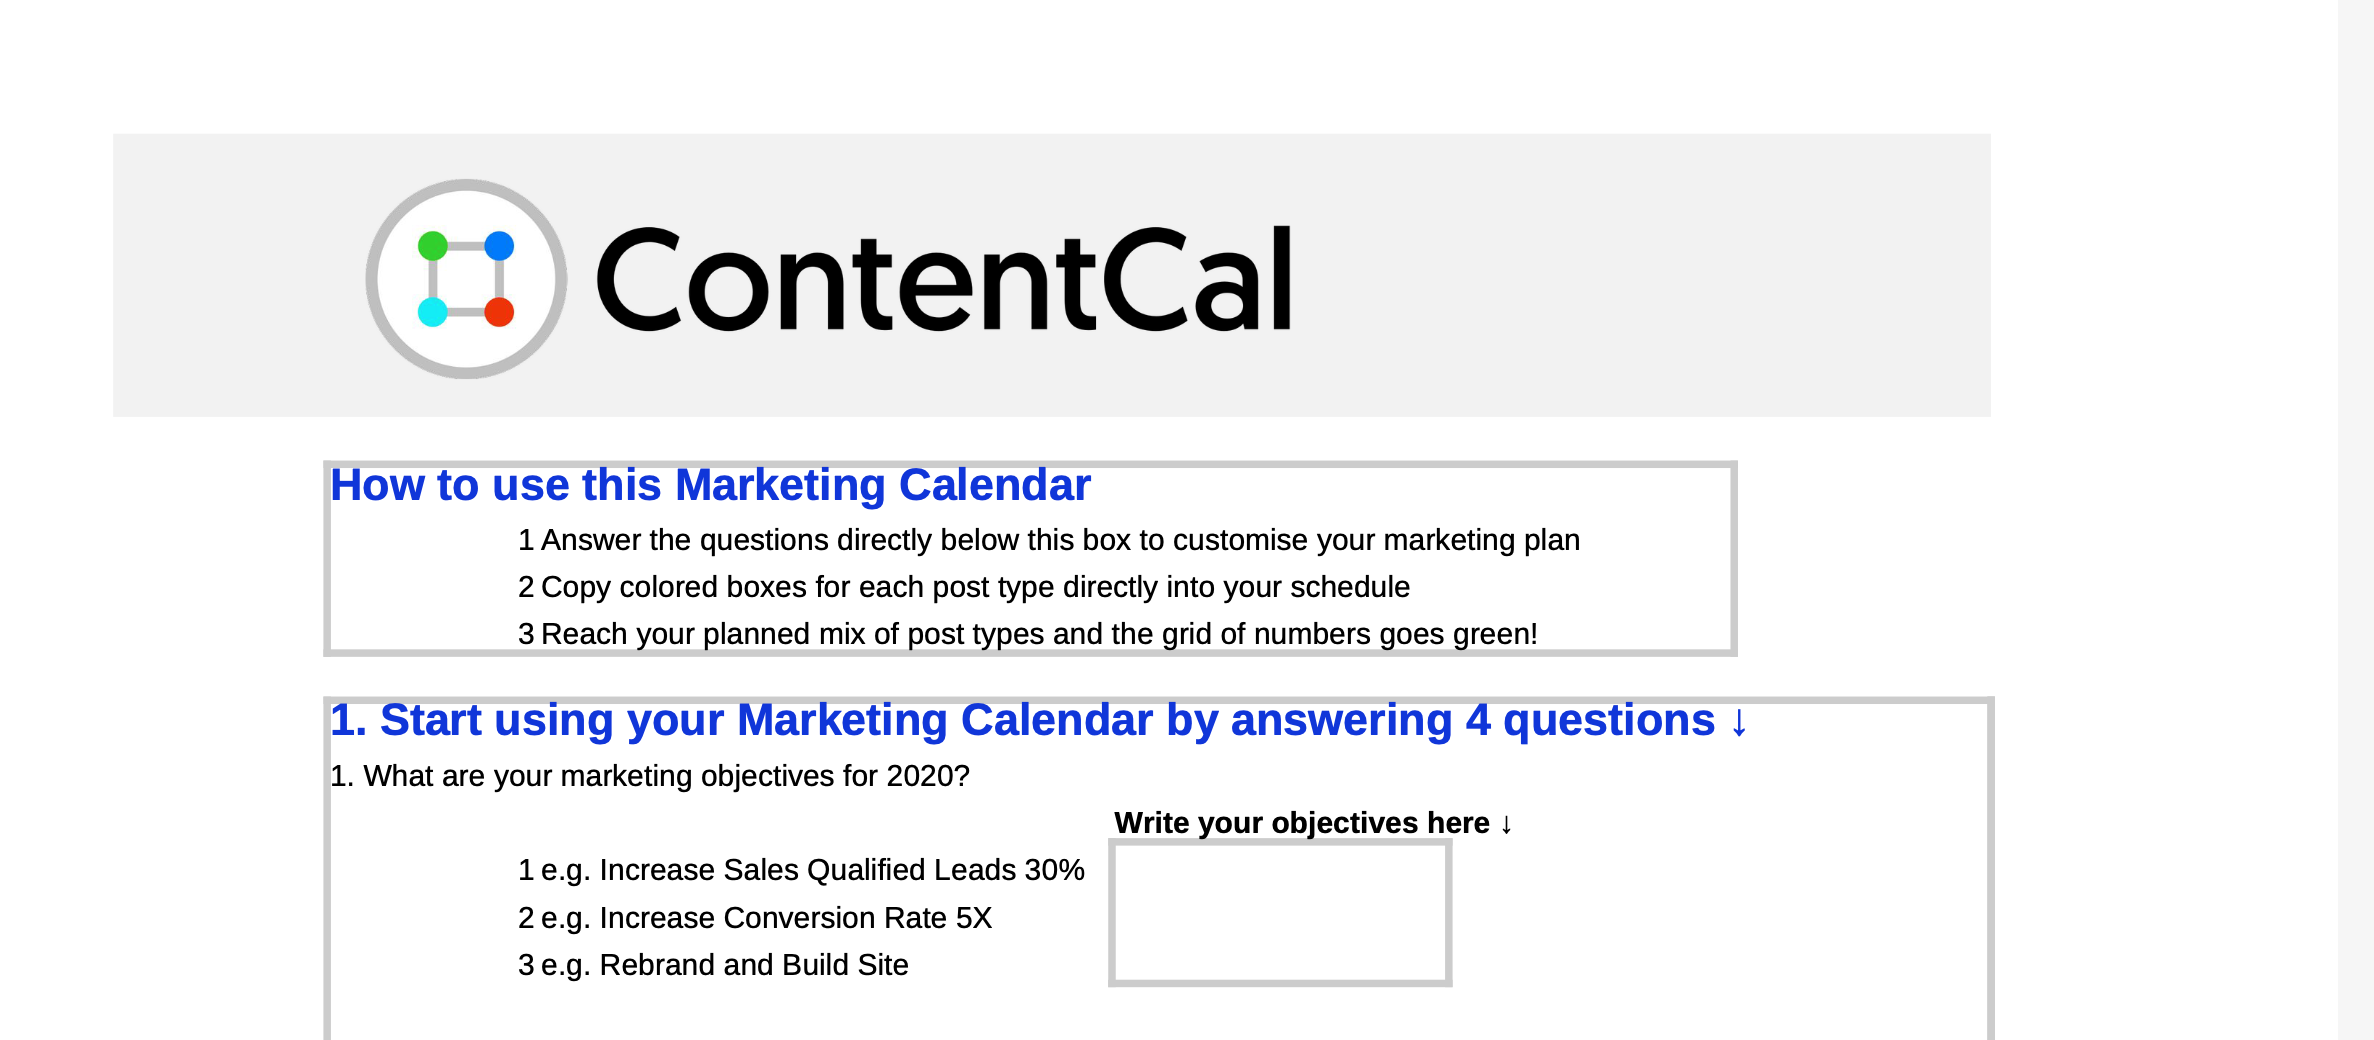 ContentCal marketing calendar